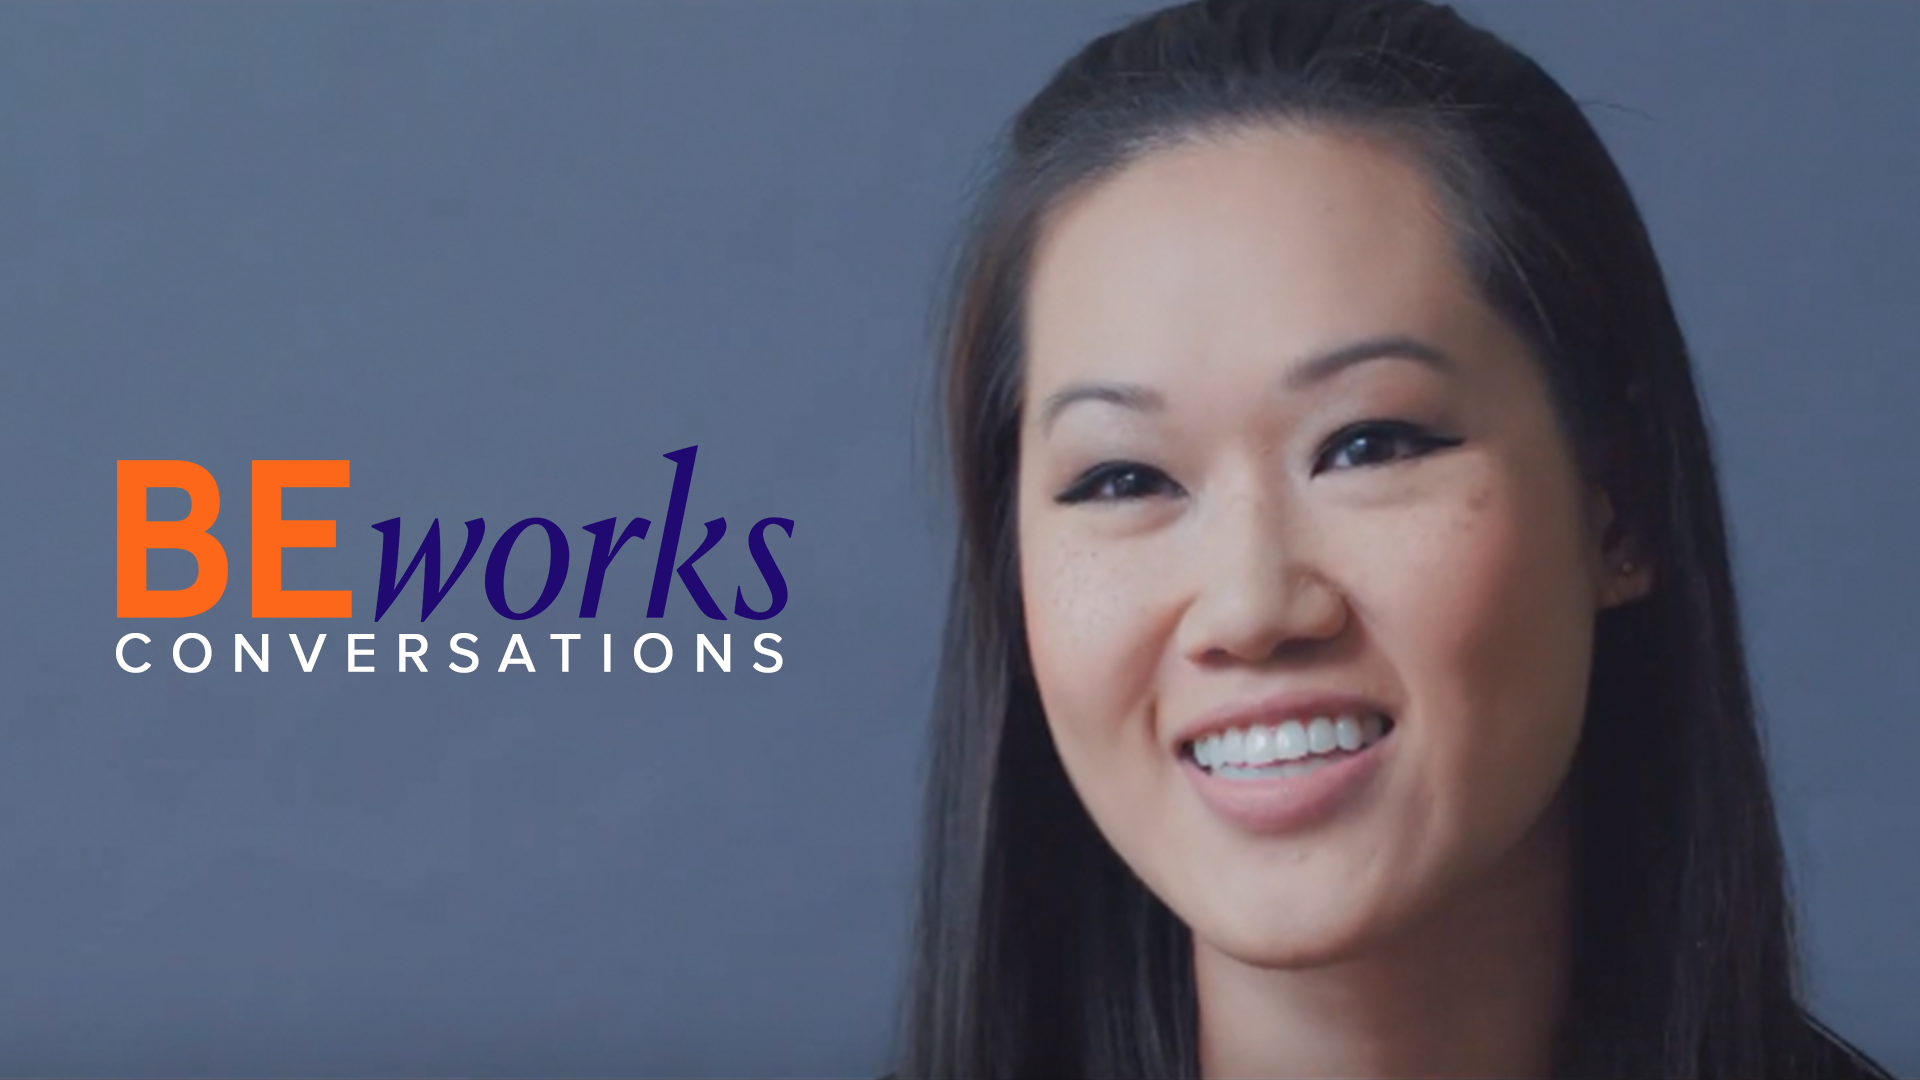 Our Associates - BEworks Associates are a collective of scientists and behavioral experts who have a passion for learning, deep expertise in their respective fields of psychology, marketing, economics and neuroscience, and a keen sense of humour.